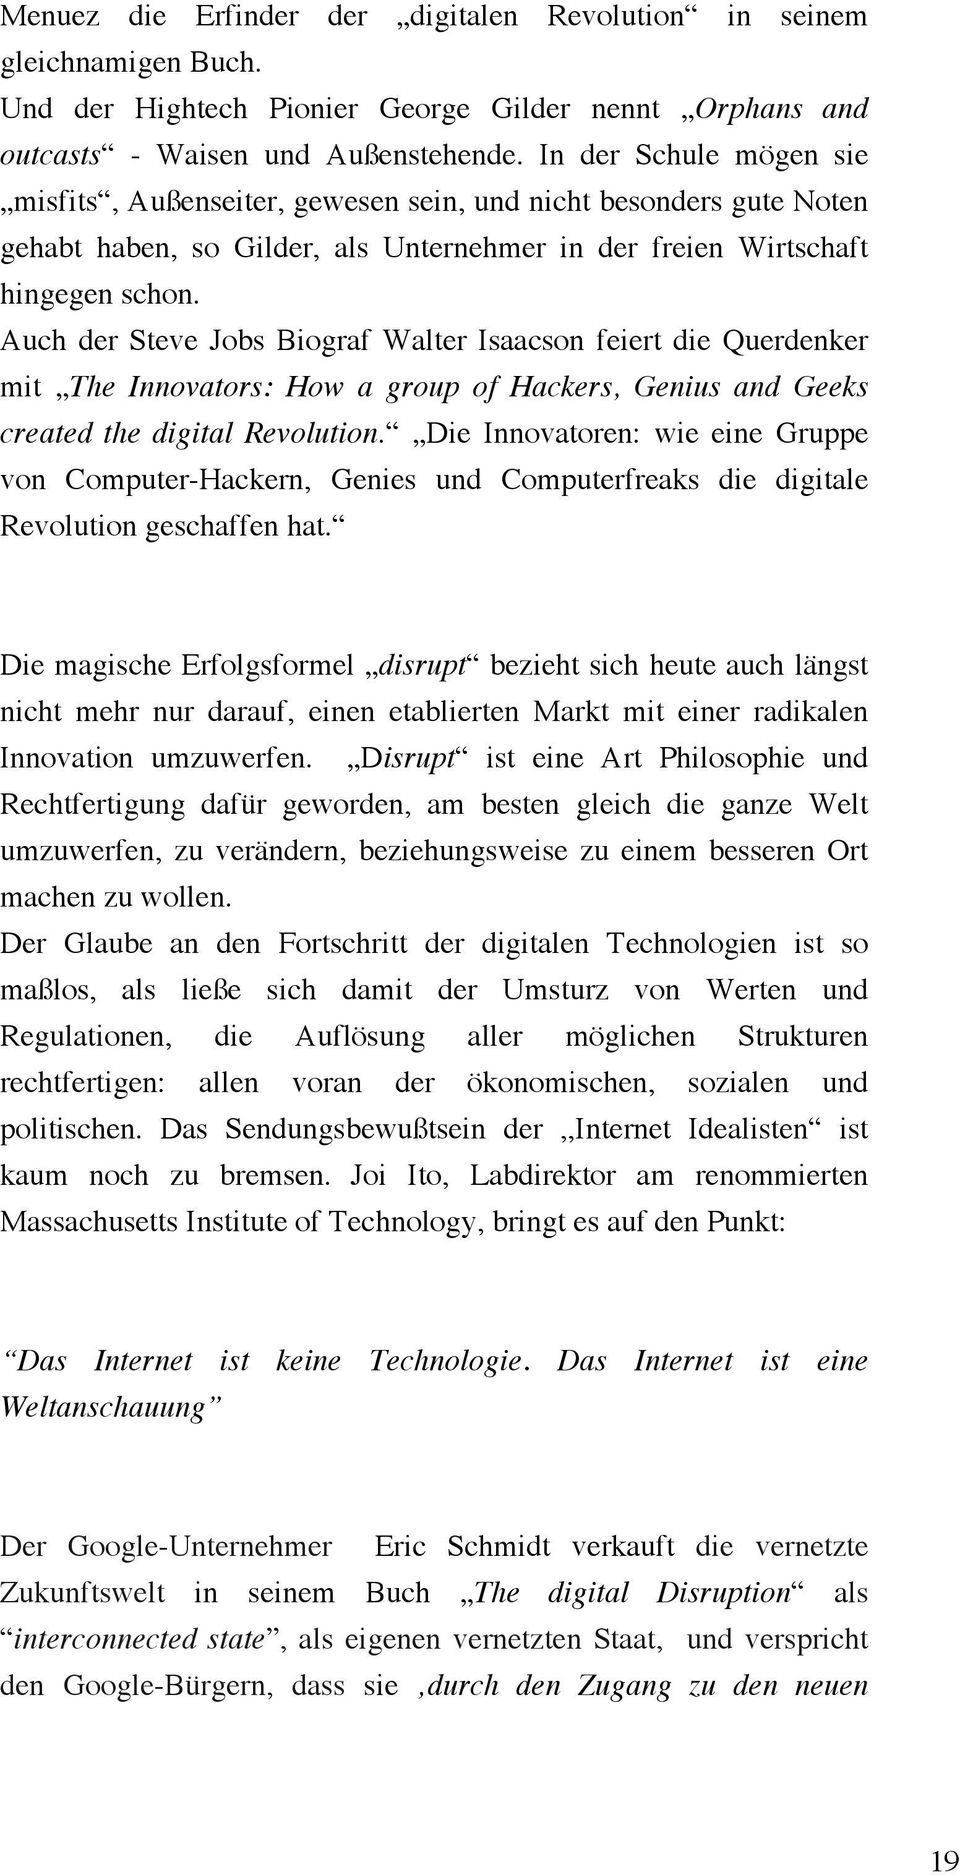 Auch der Steve Jobs Biograf Walter Isaacson feiert die Querdenker mit The Innovators: How a group of Hackers, Genius and Geeks created the digital Revolution.